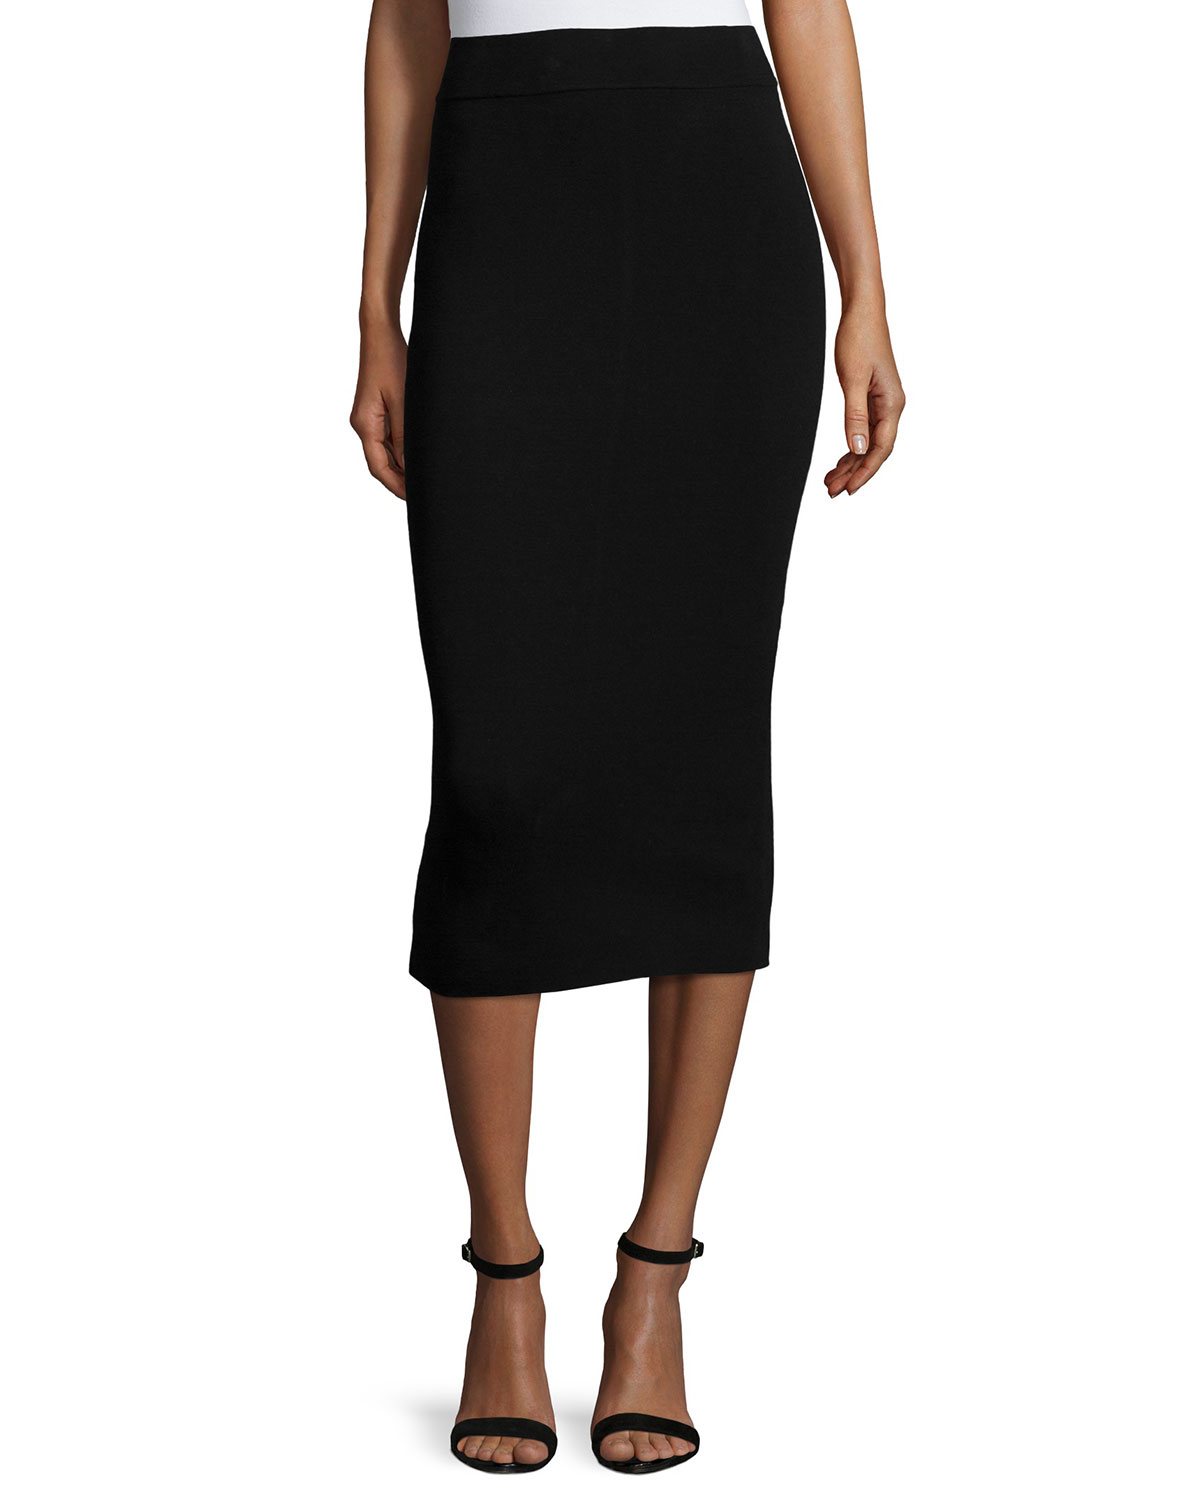 Lyst - Milly Fitted Midi Pencil Skirt in Black